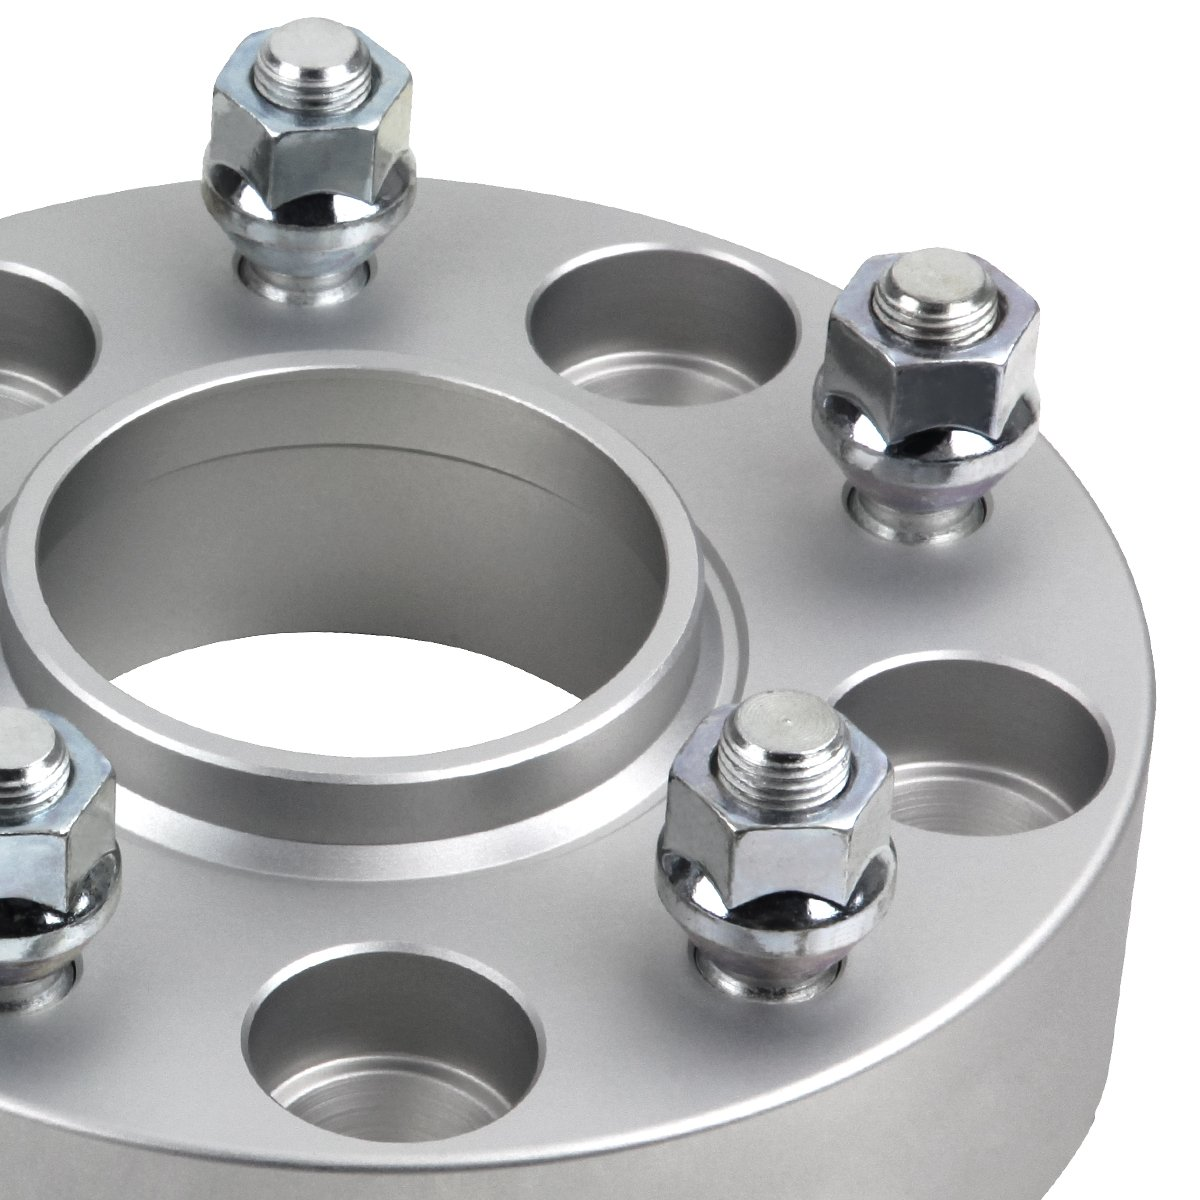 Supreme Suspensions - (4pc) 1997-2006 Jeep Wrangler TJ 2'' Hub Centric Wheel Spacers 5x4.5'' (5x114.3mm) with Lip + 1/2''x20 Studs [Silver] by Supreme Suspensions (Image #3)